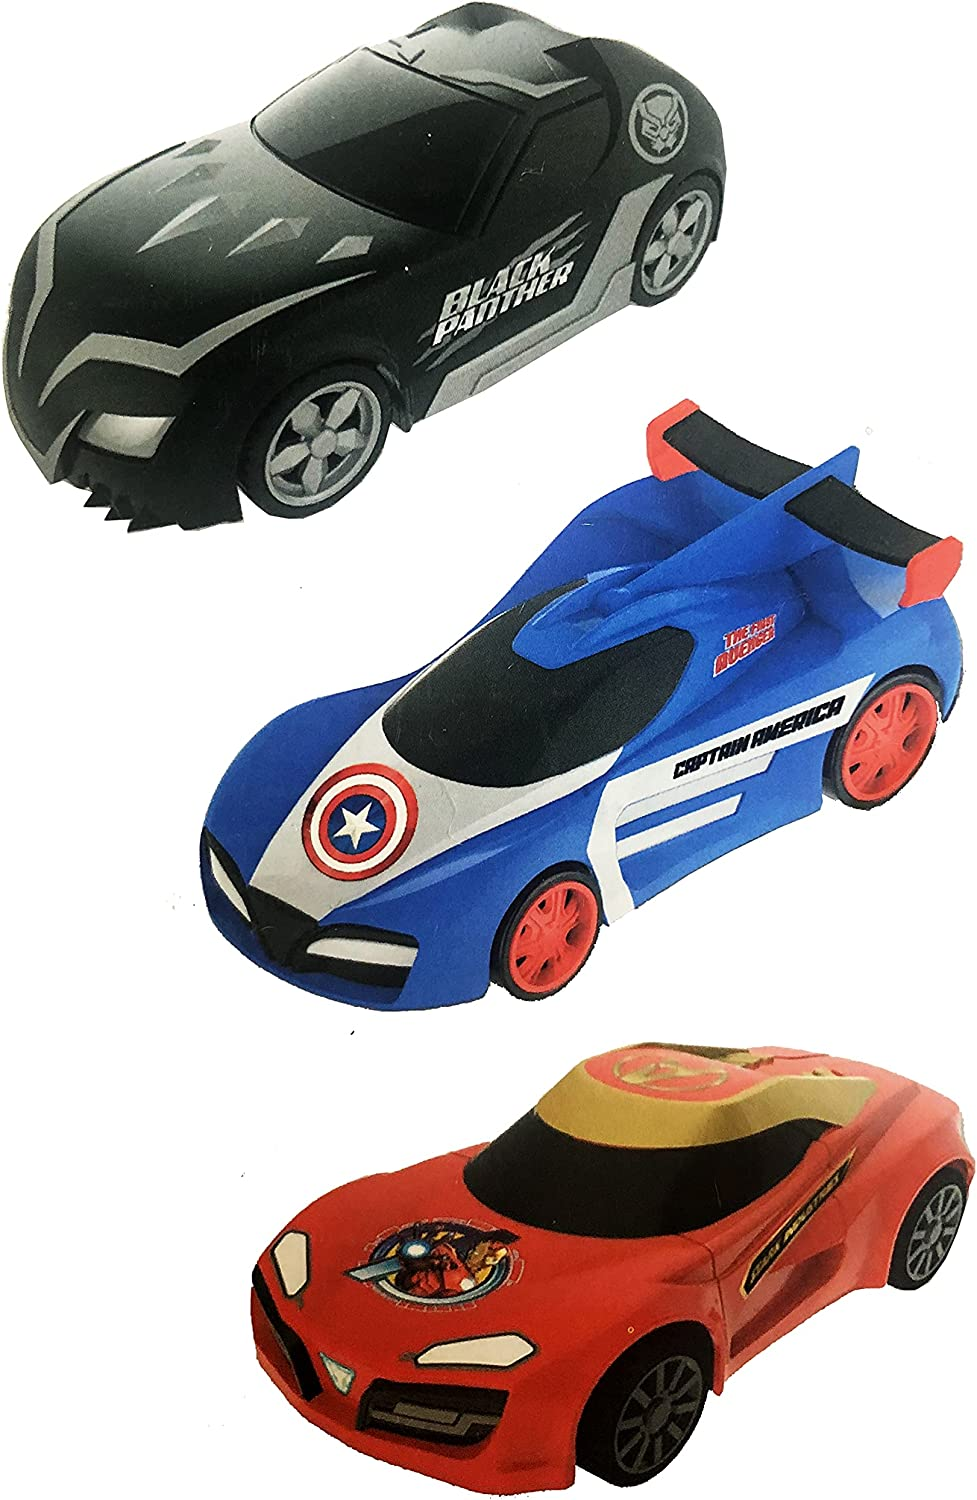 Avengers Inventory cleanup selling sale Super-cheap Friction Cars 5 Inch Spiderman Iron Vehicles Captai Man